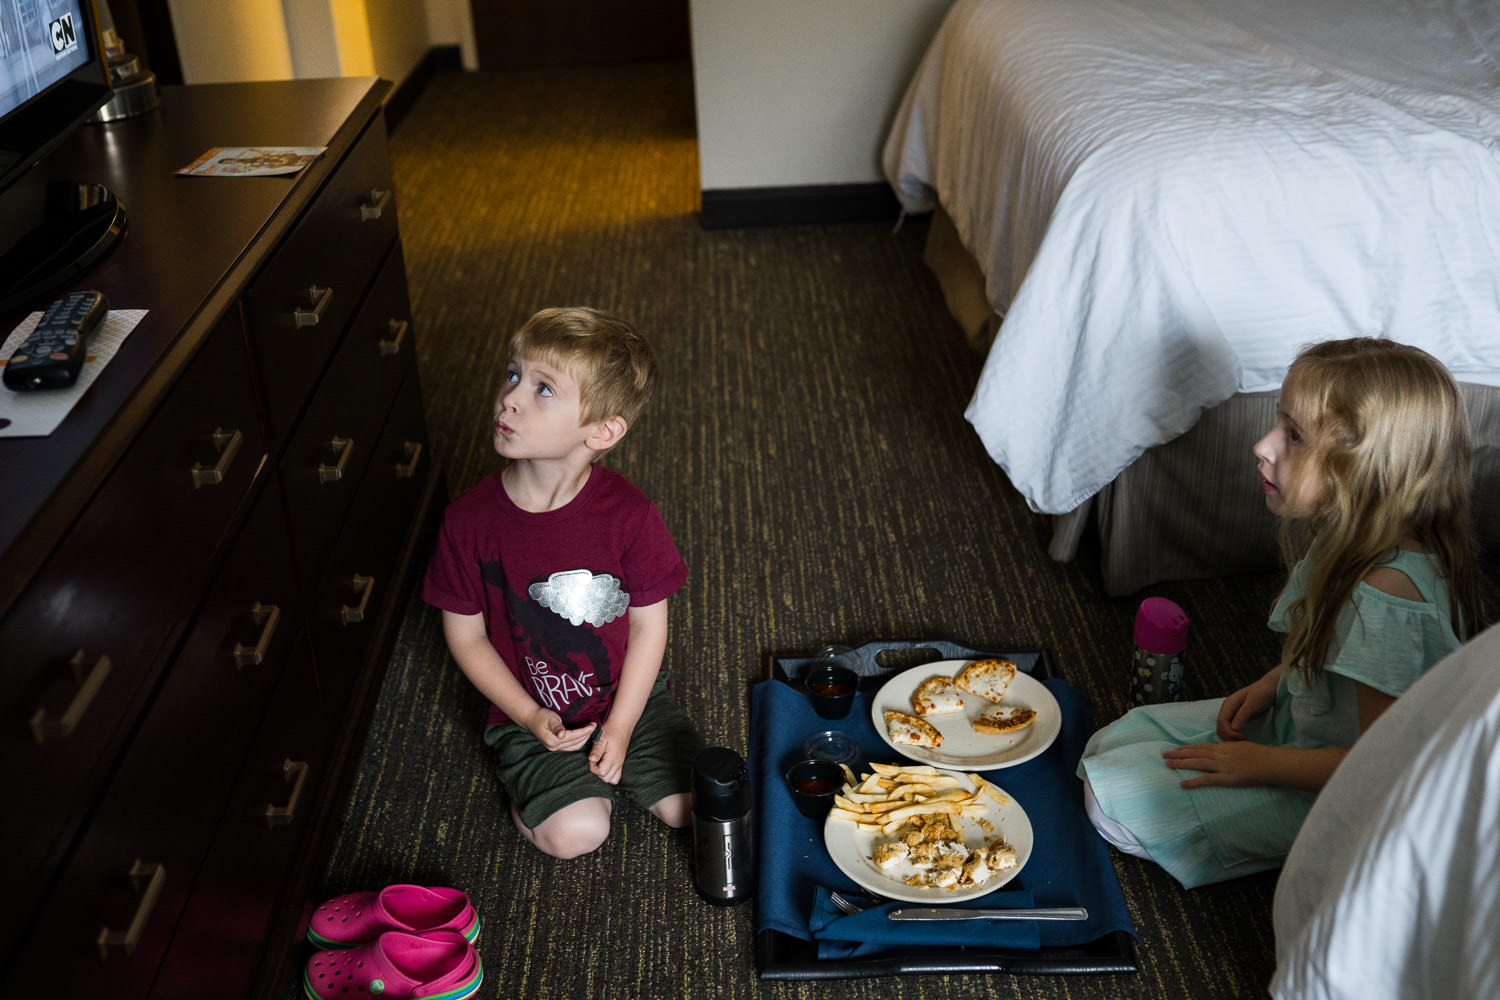 A little boy and girl eat room service dinner on the floor of a hotel room.